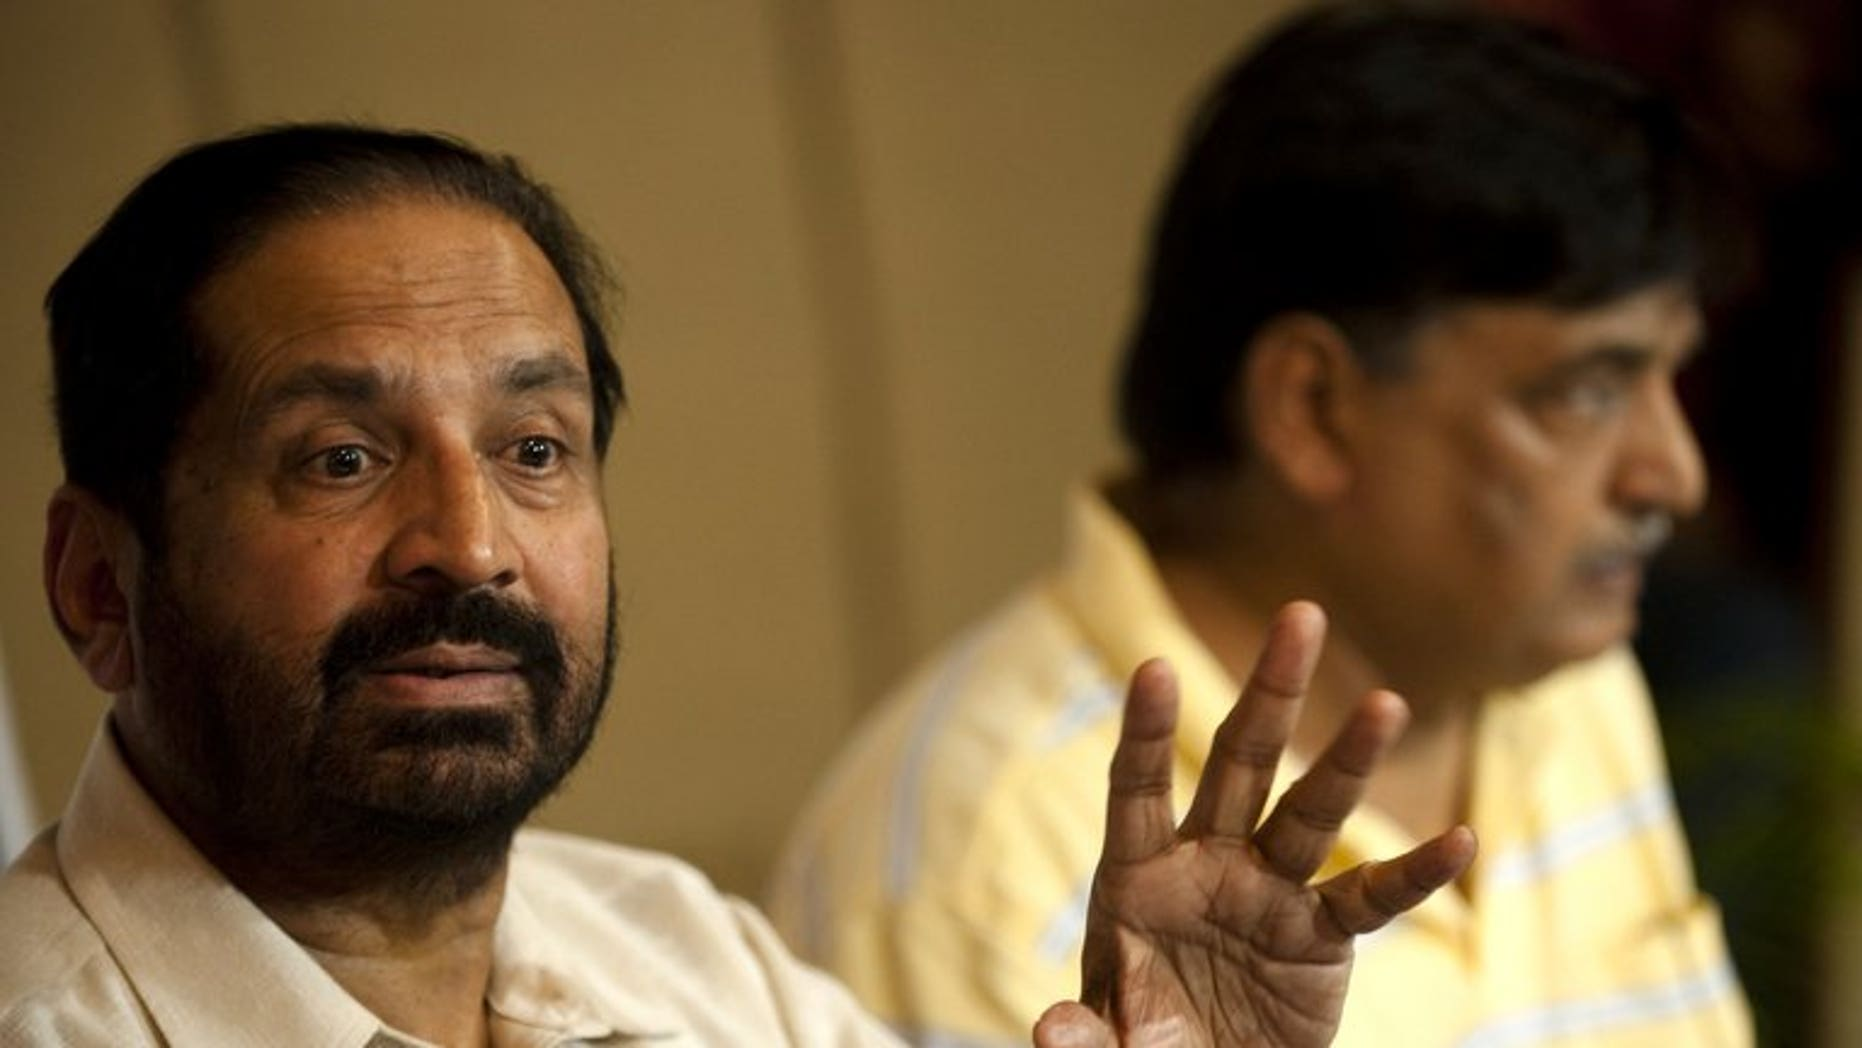 Former Indian Olympic Association (IOA) chief Suresh Kalmadi (left) and Lalit Bhanot give a press conference in New Delhi, on September 2, 2010. The IOC has sent a 43-page draft constitution that needs to be adopted by the suspended Indian Olympic Association (IOA) before its next elections in September, an Indian Olympics official has told AFP.